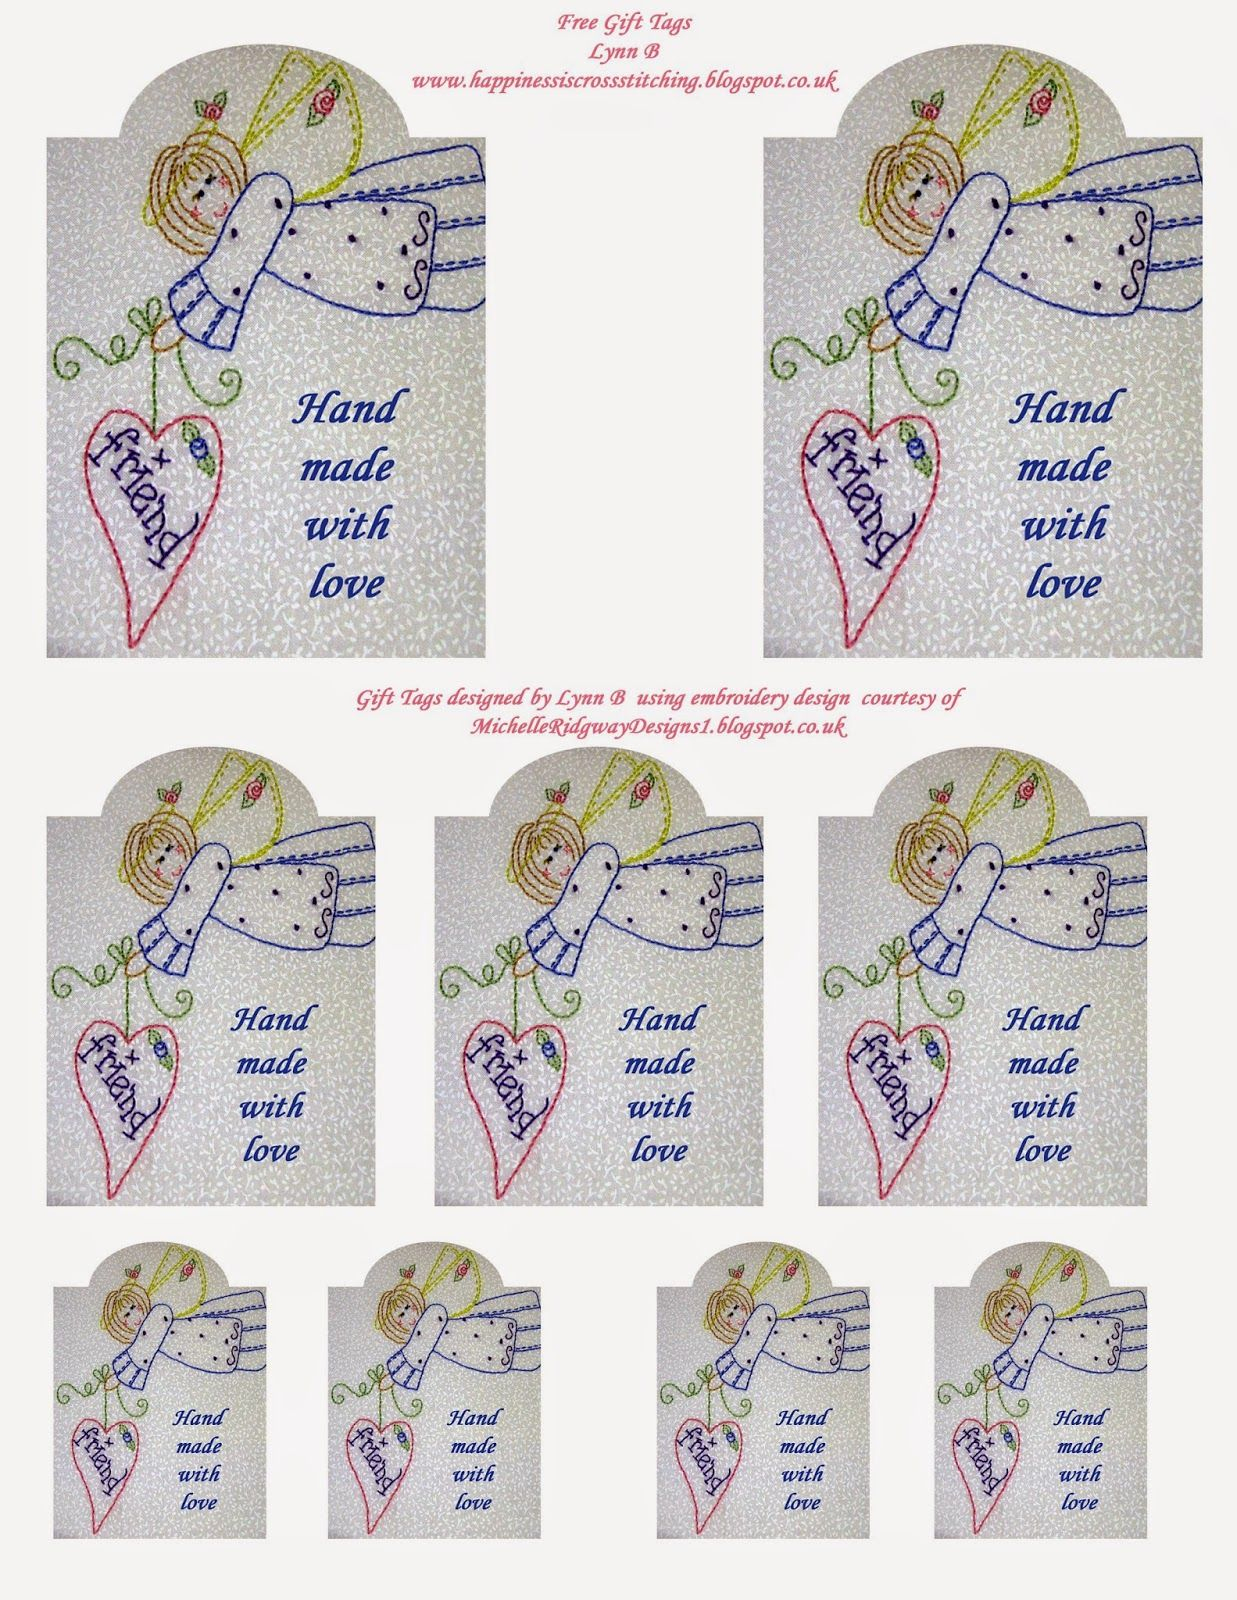 Happiness Is Cross Stitching : Freebie Friday - Angel Gift Tags - Free Printable Angel Gift Tags